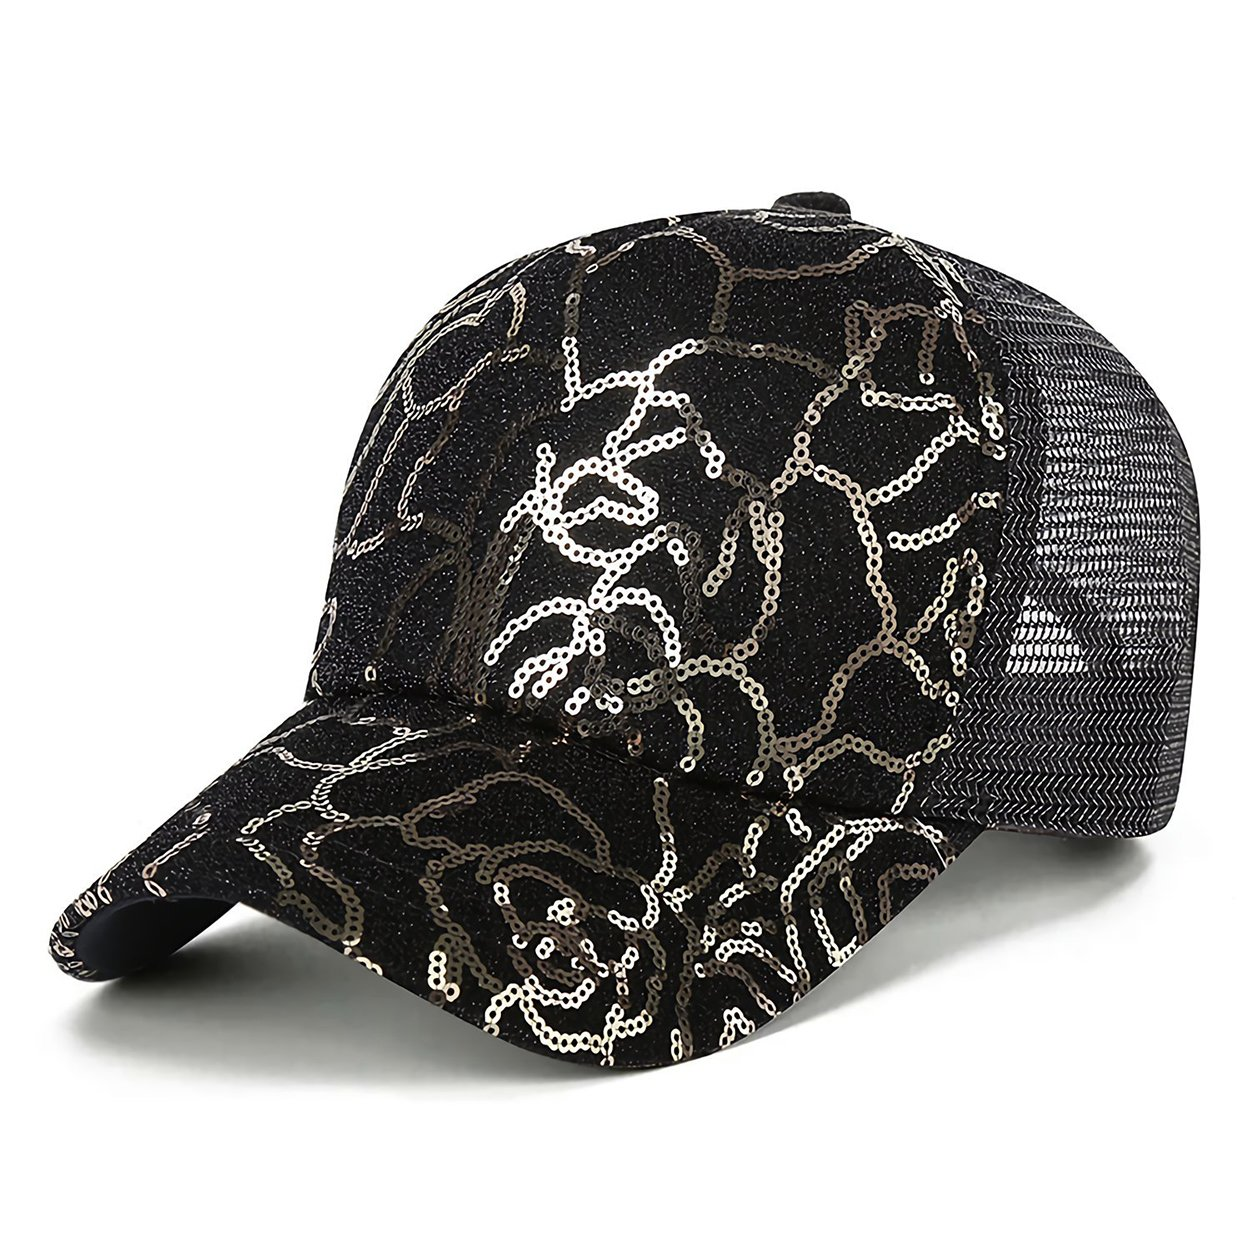 0265708b4e1b1 Baseball Cap with Ponytail-Glitter High Ponytail Hat Sequins Messy Buns  Trucker Ponycaps Dad Hat Black - B at Amazon Women's Clothing store: